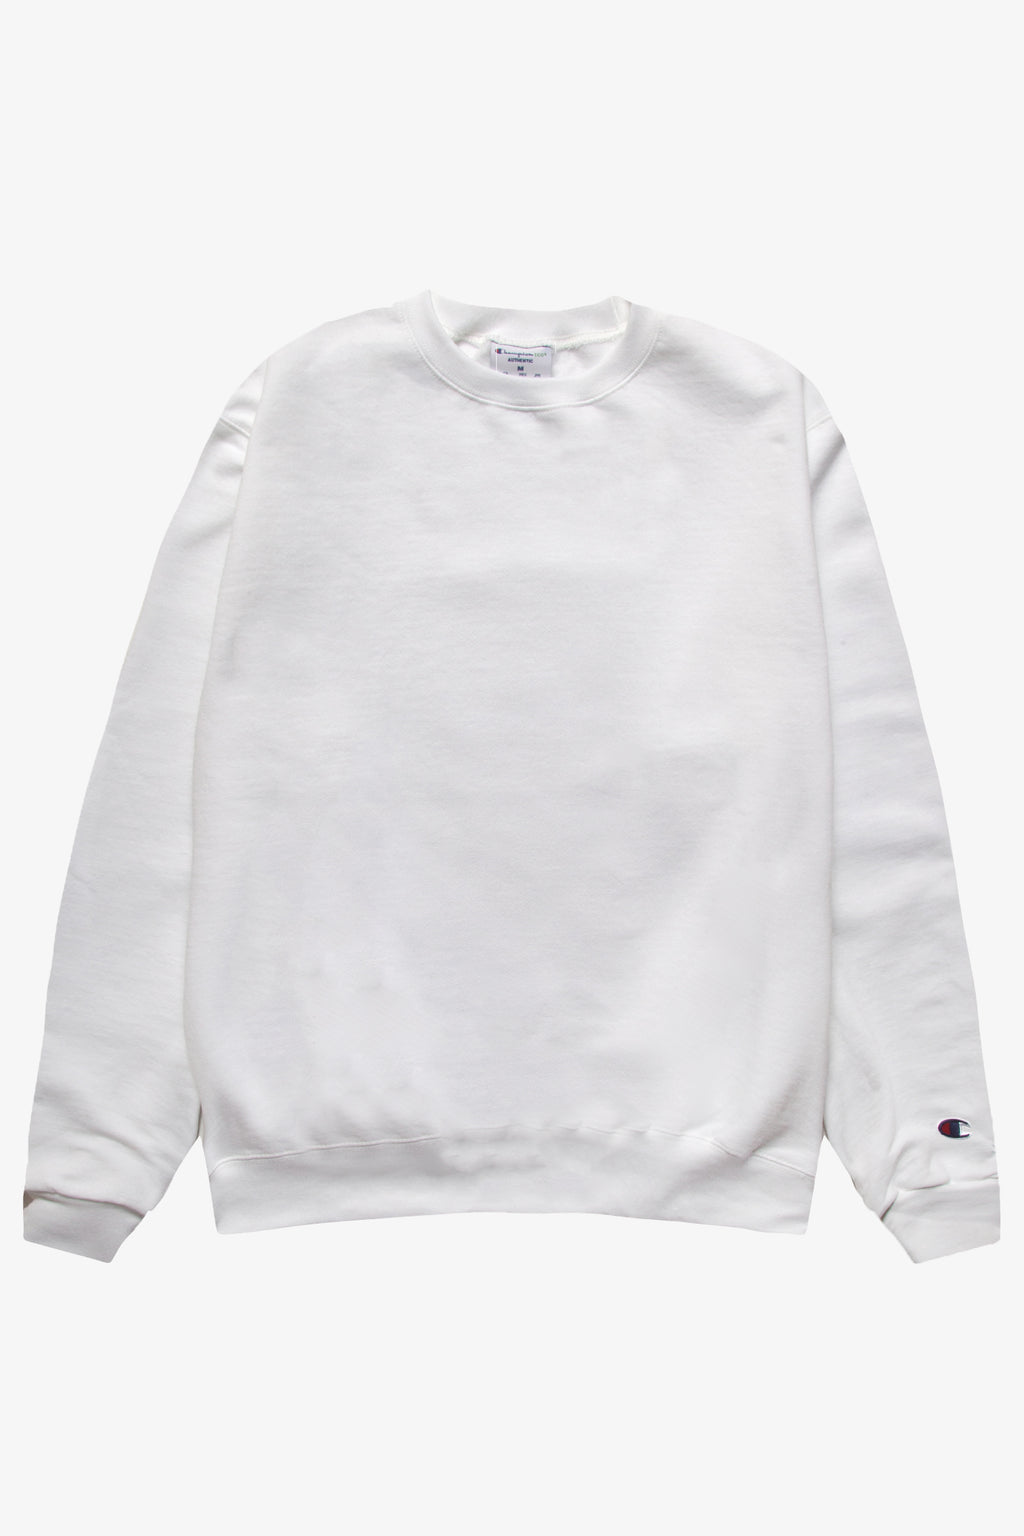 Champion - 9oz Crewneck - White